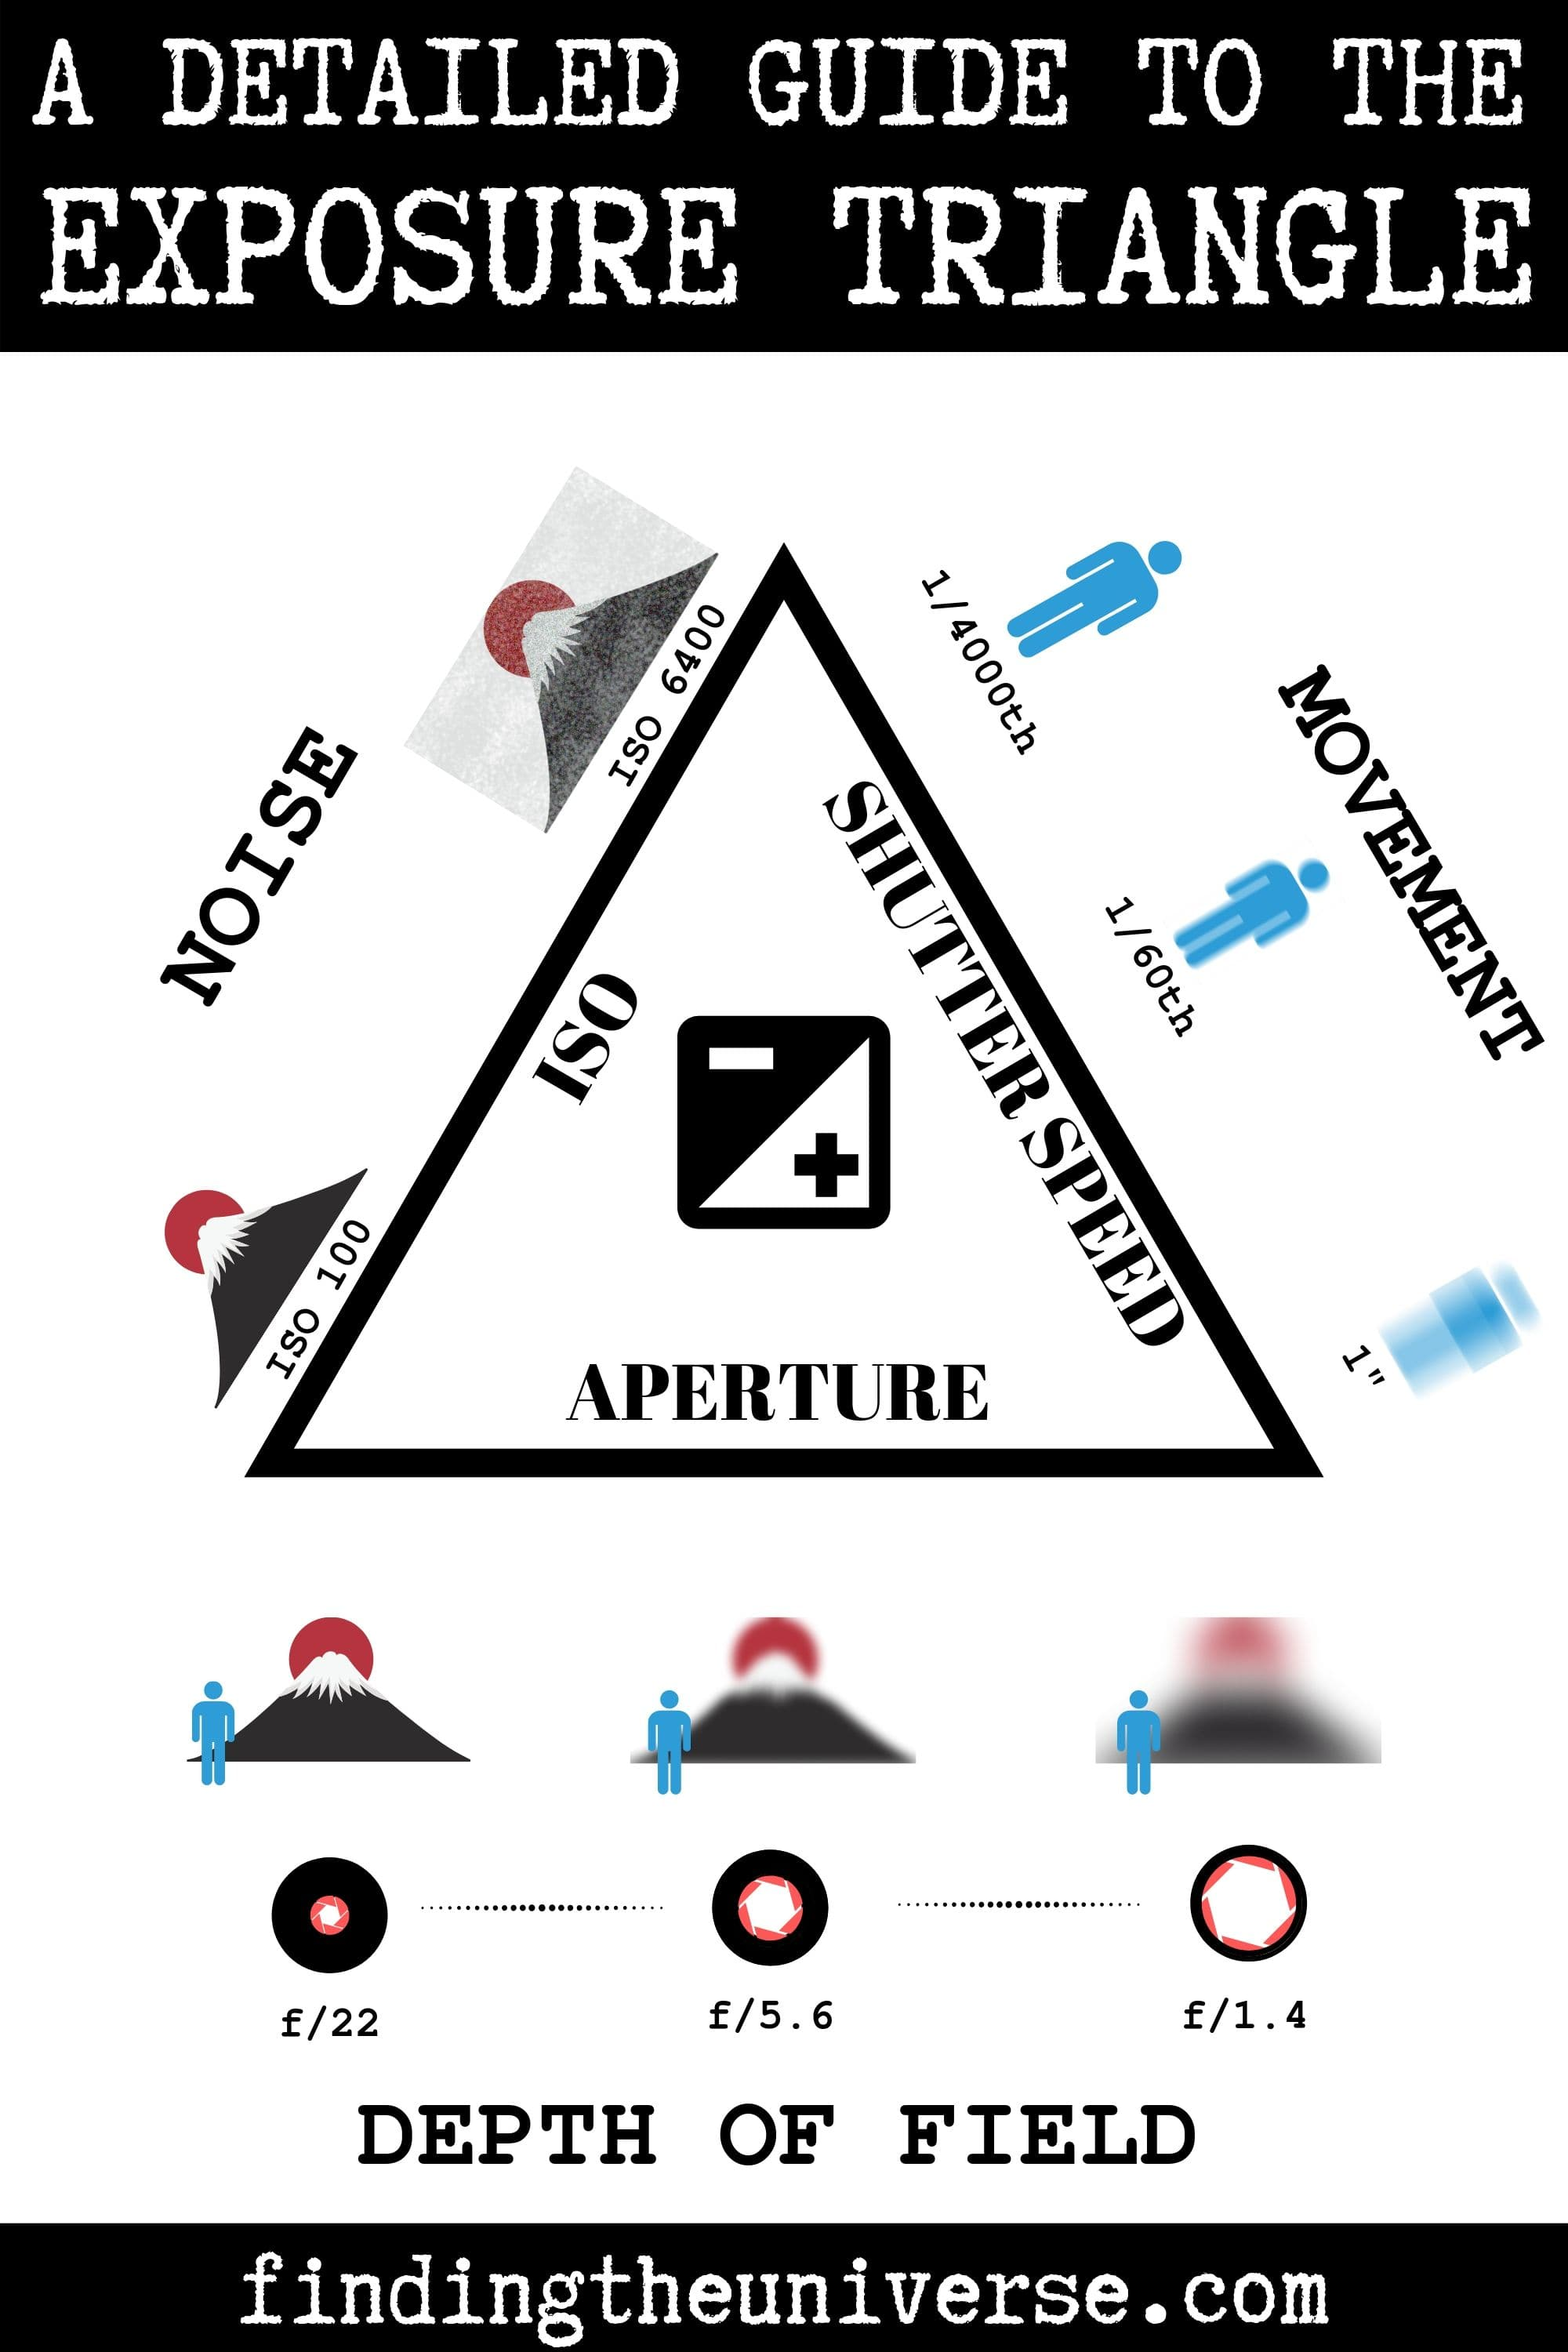 A detailed guide to the exposure triangle in photography, with explanation of aperture, shutter speed and ISO settings